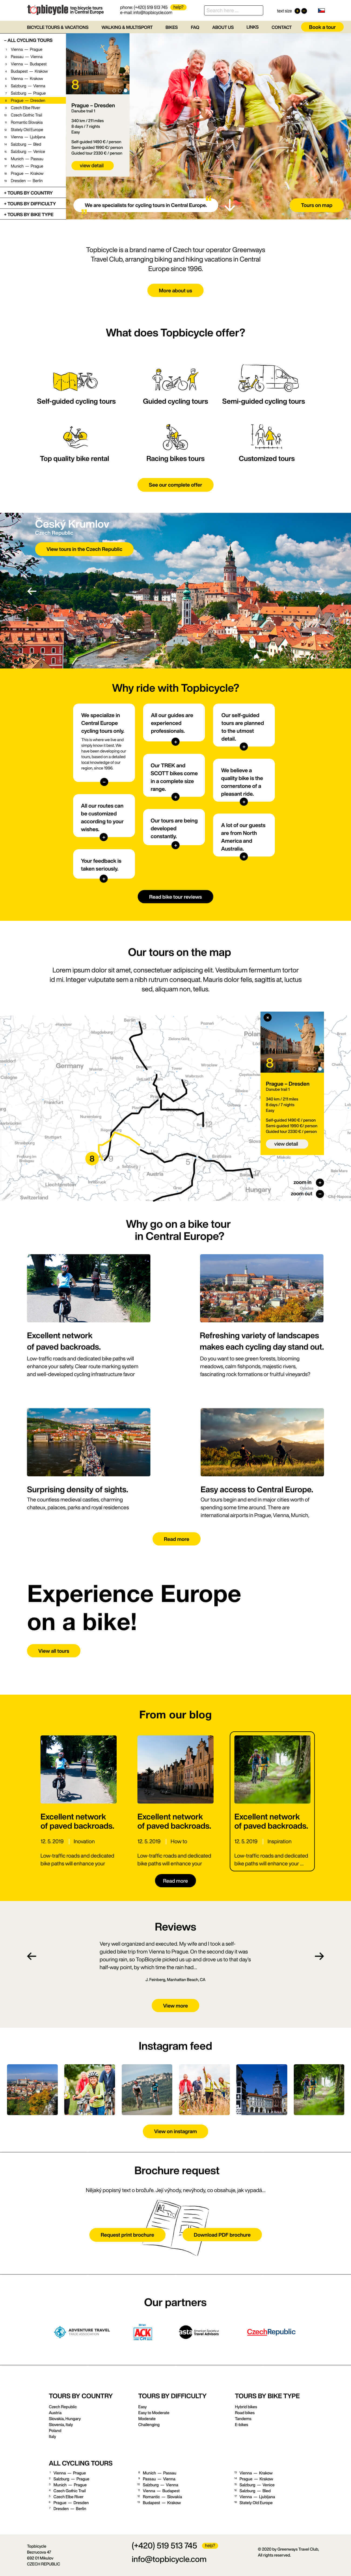 Top bicycle - realizace, Webdesign